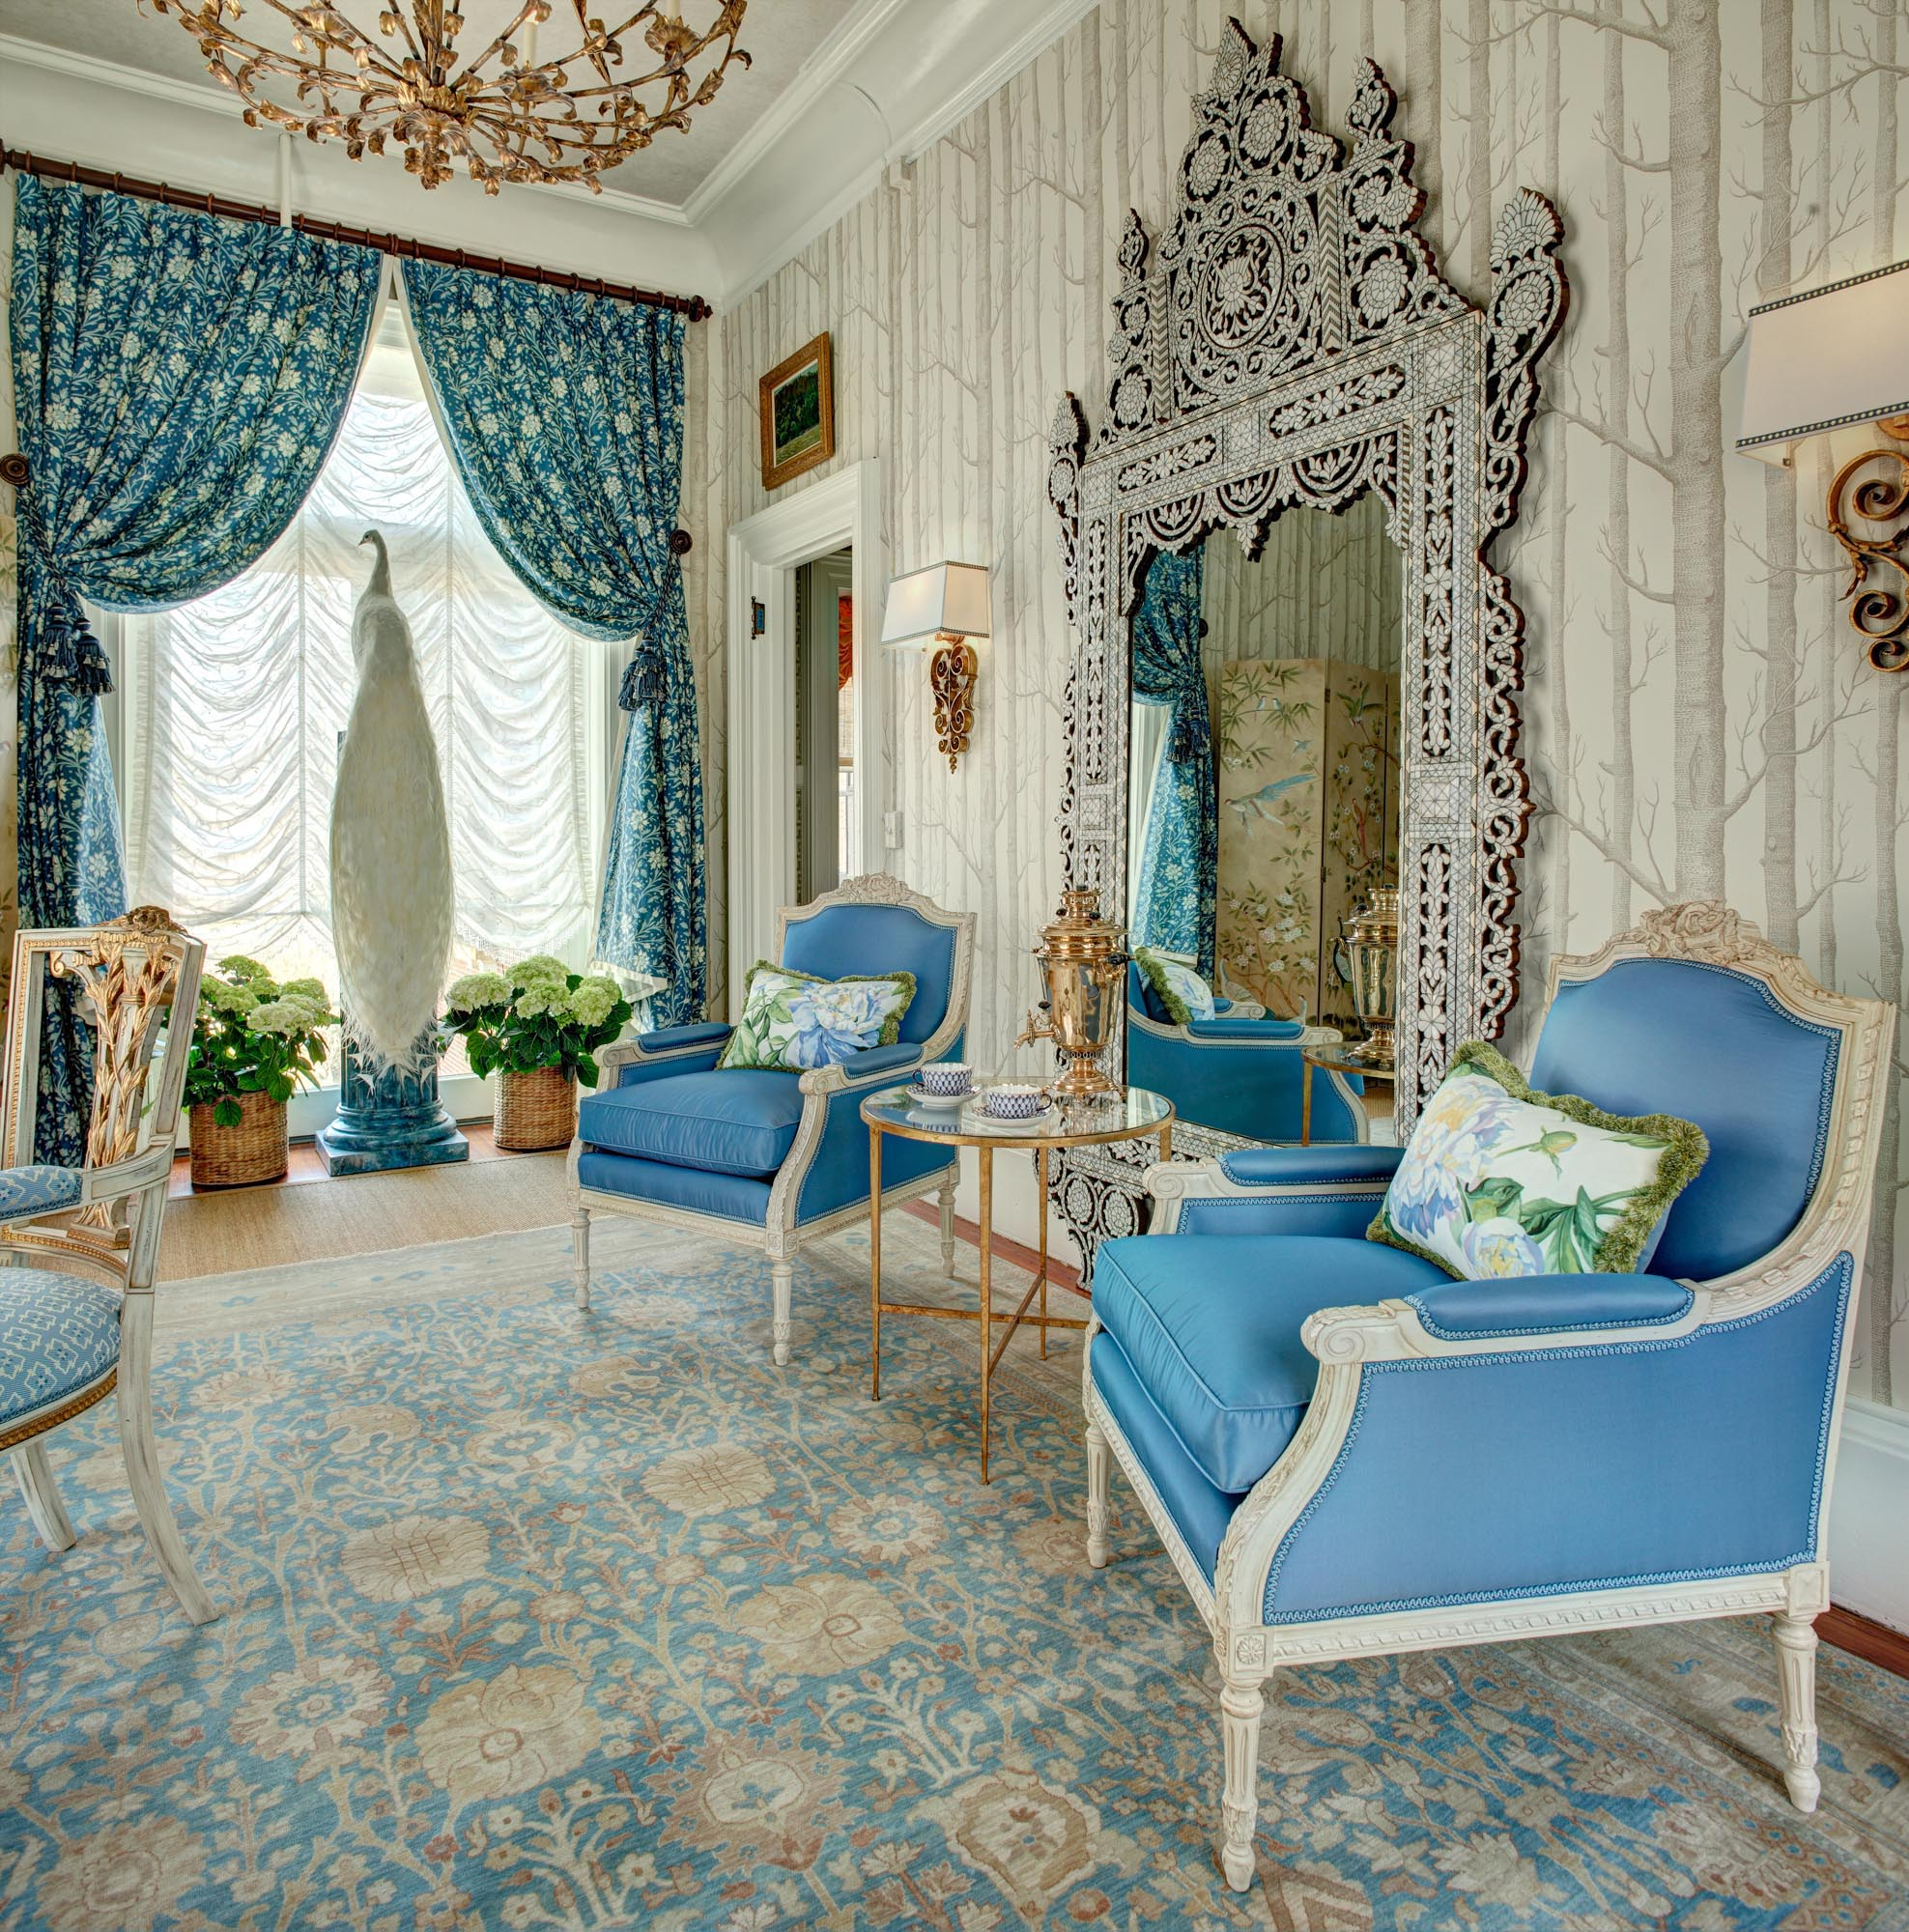 Living room with blue chairs and mirror in the wall